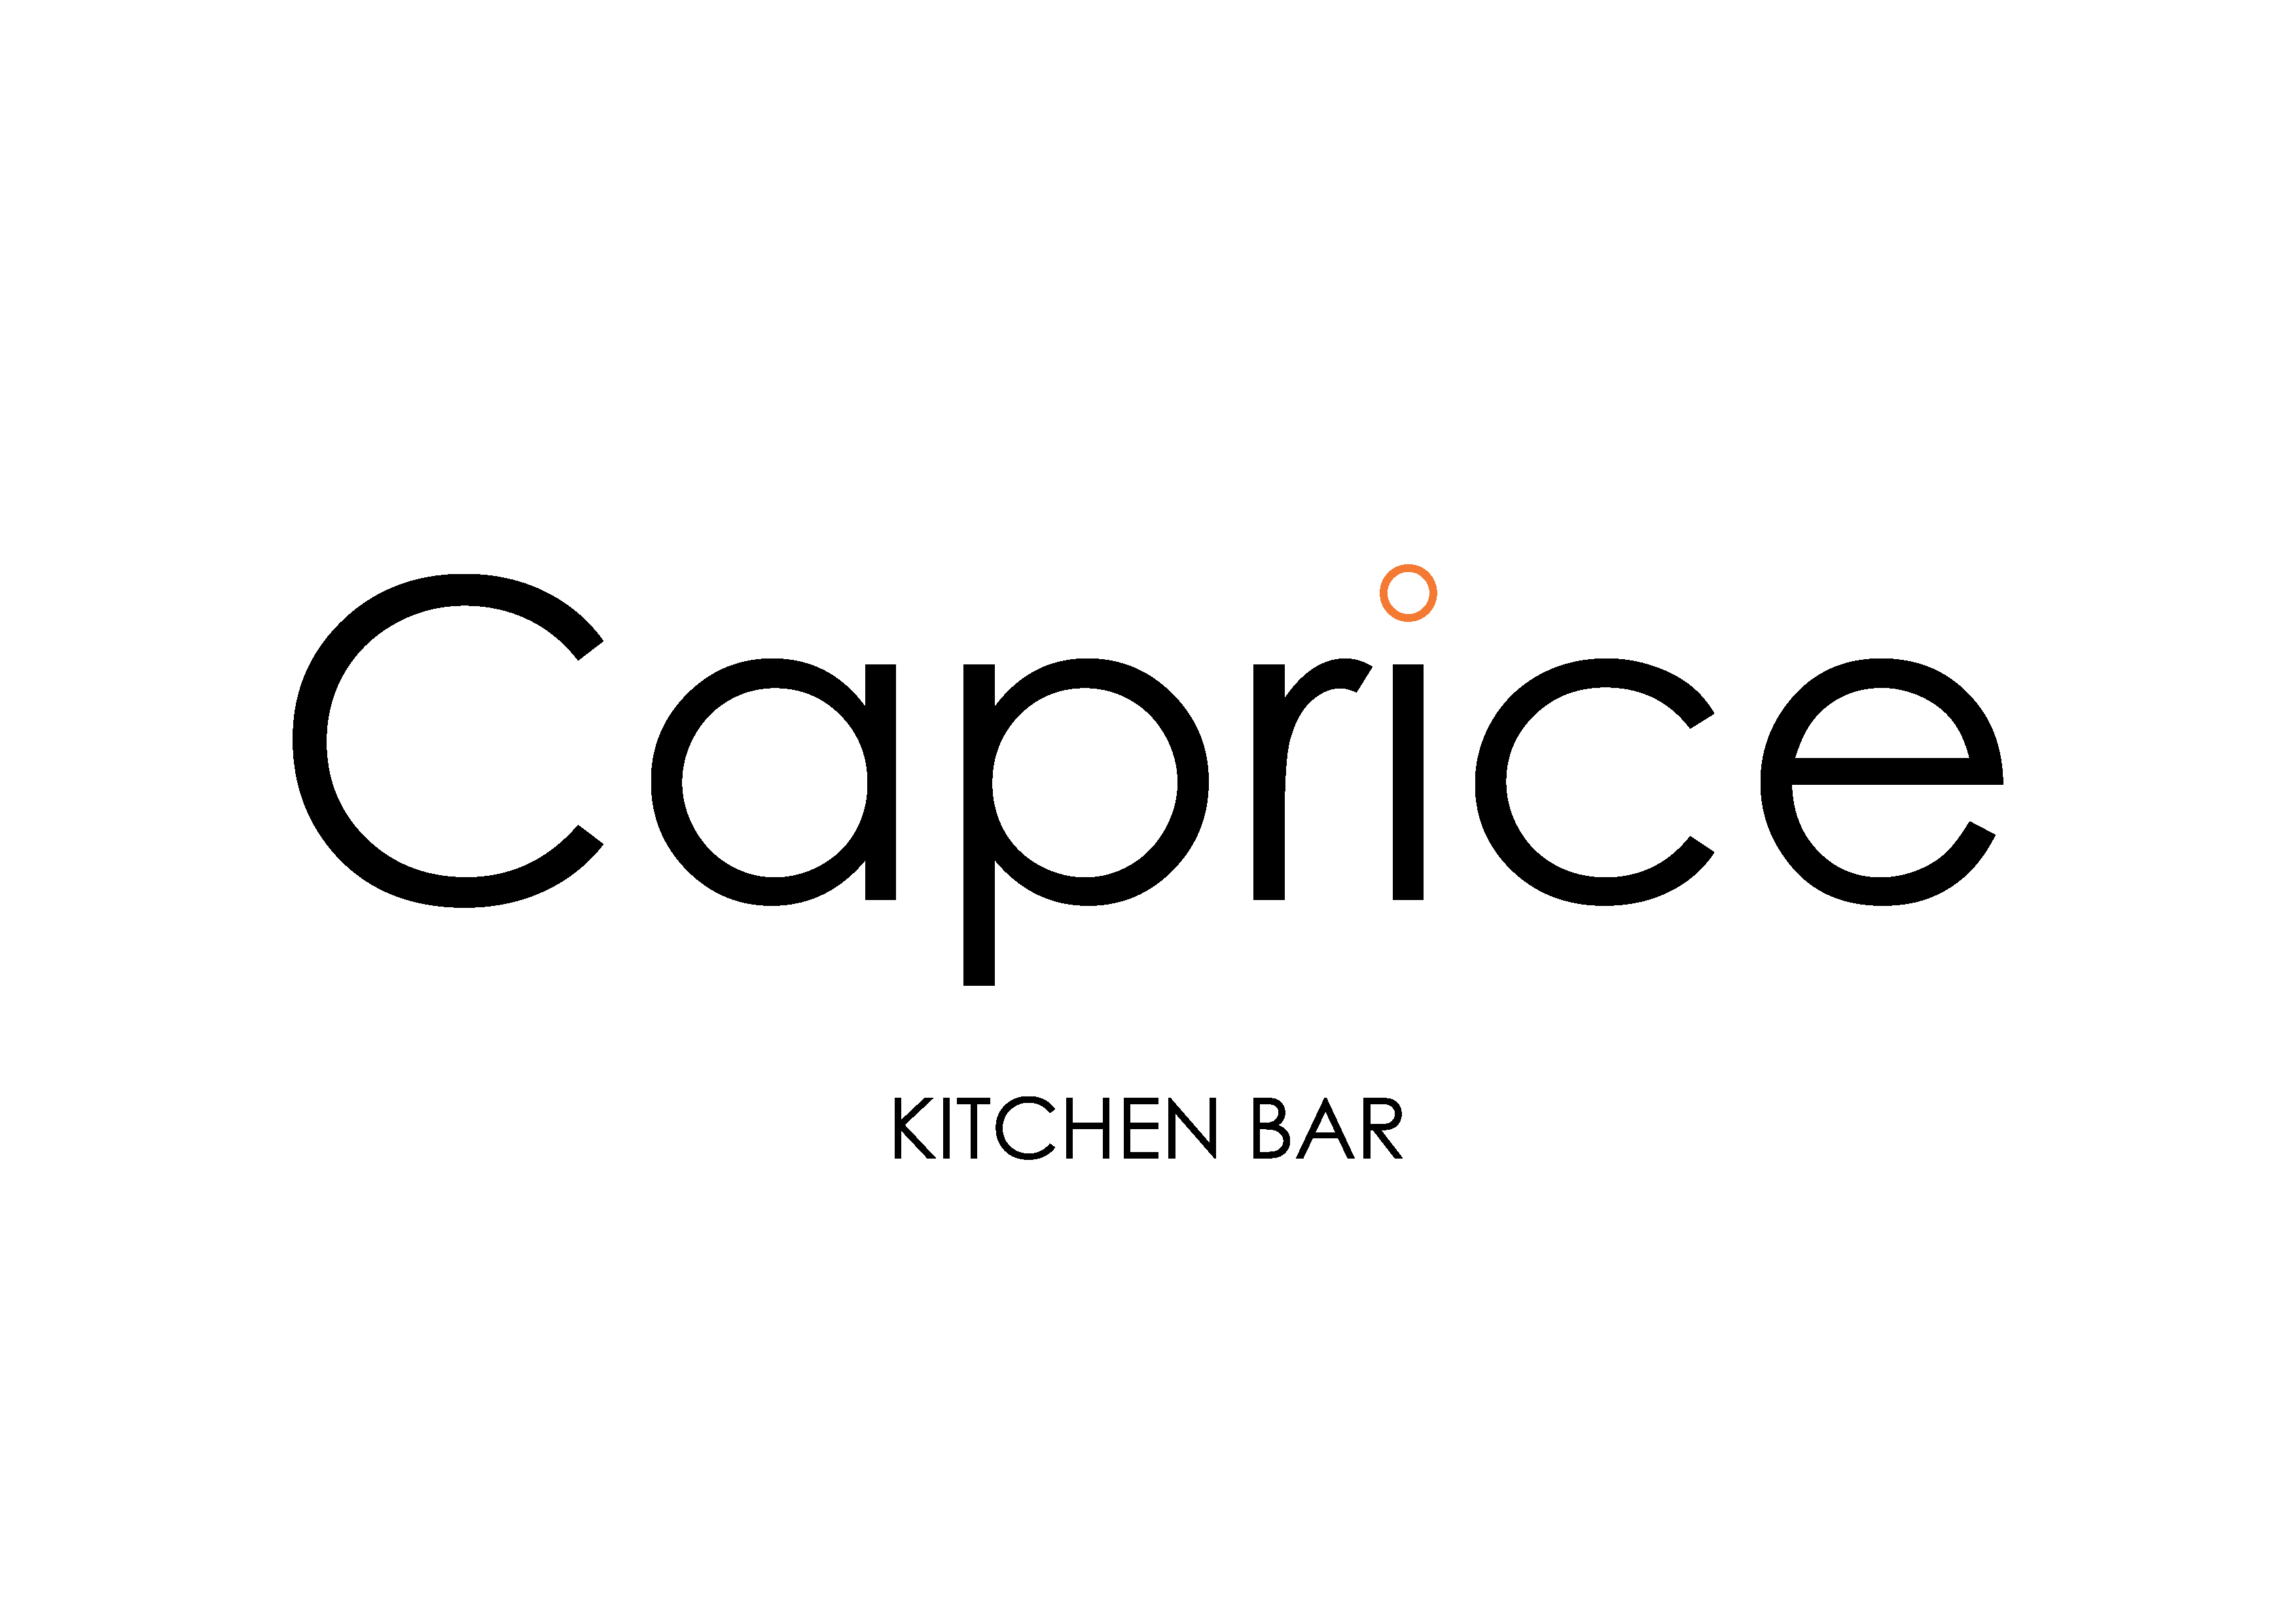 Caprice Kitchen Bar